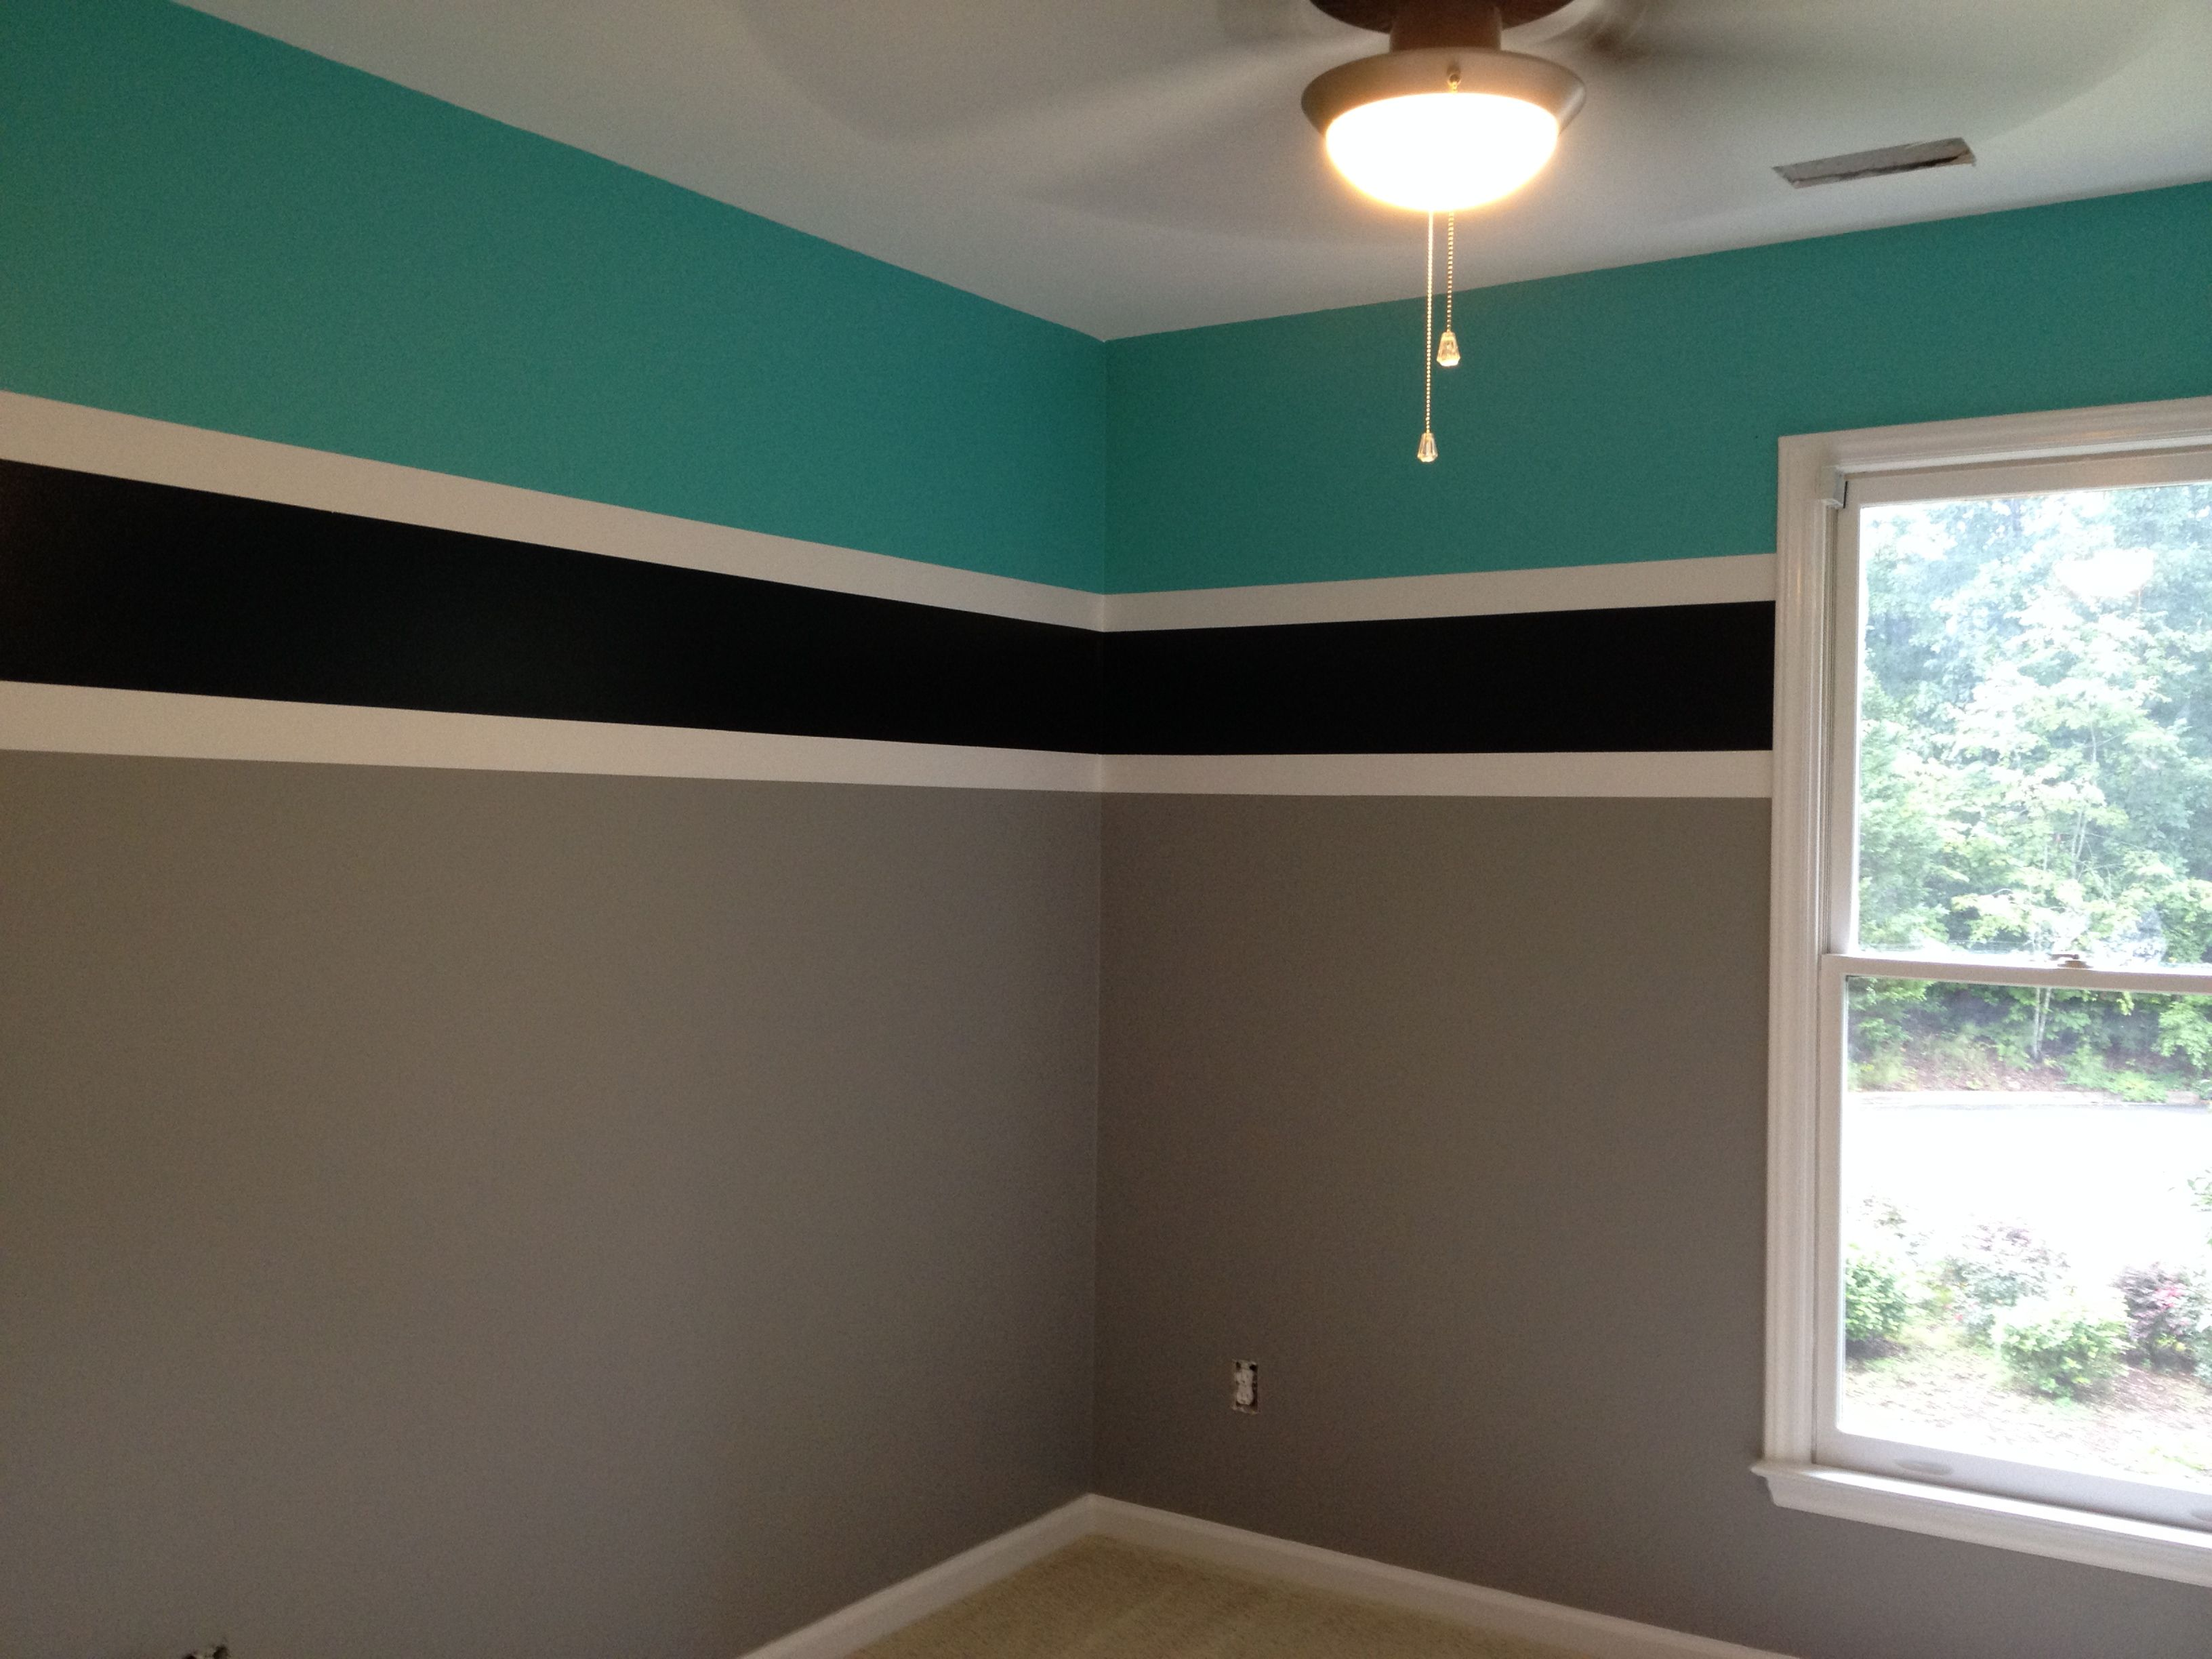 Bedroom paint ideas for boys - Final Product Teenage Boys Room Colors For A Swimmer Benjamin Moore Teal Tone